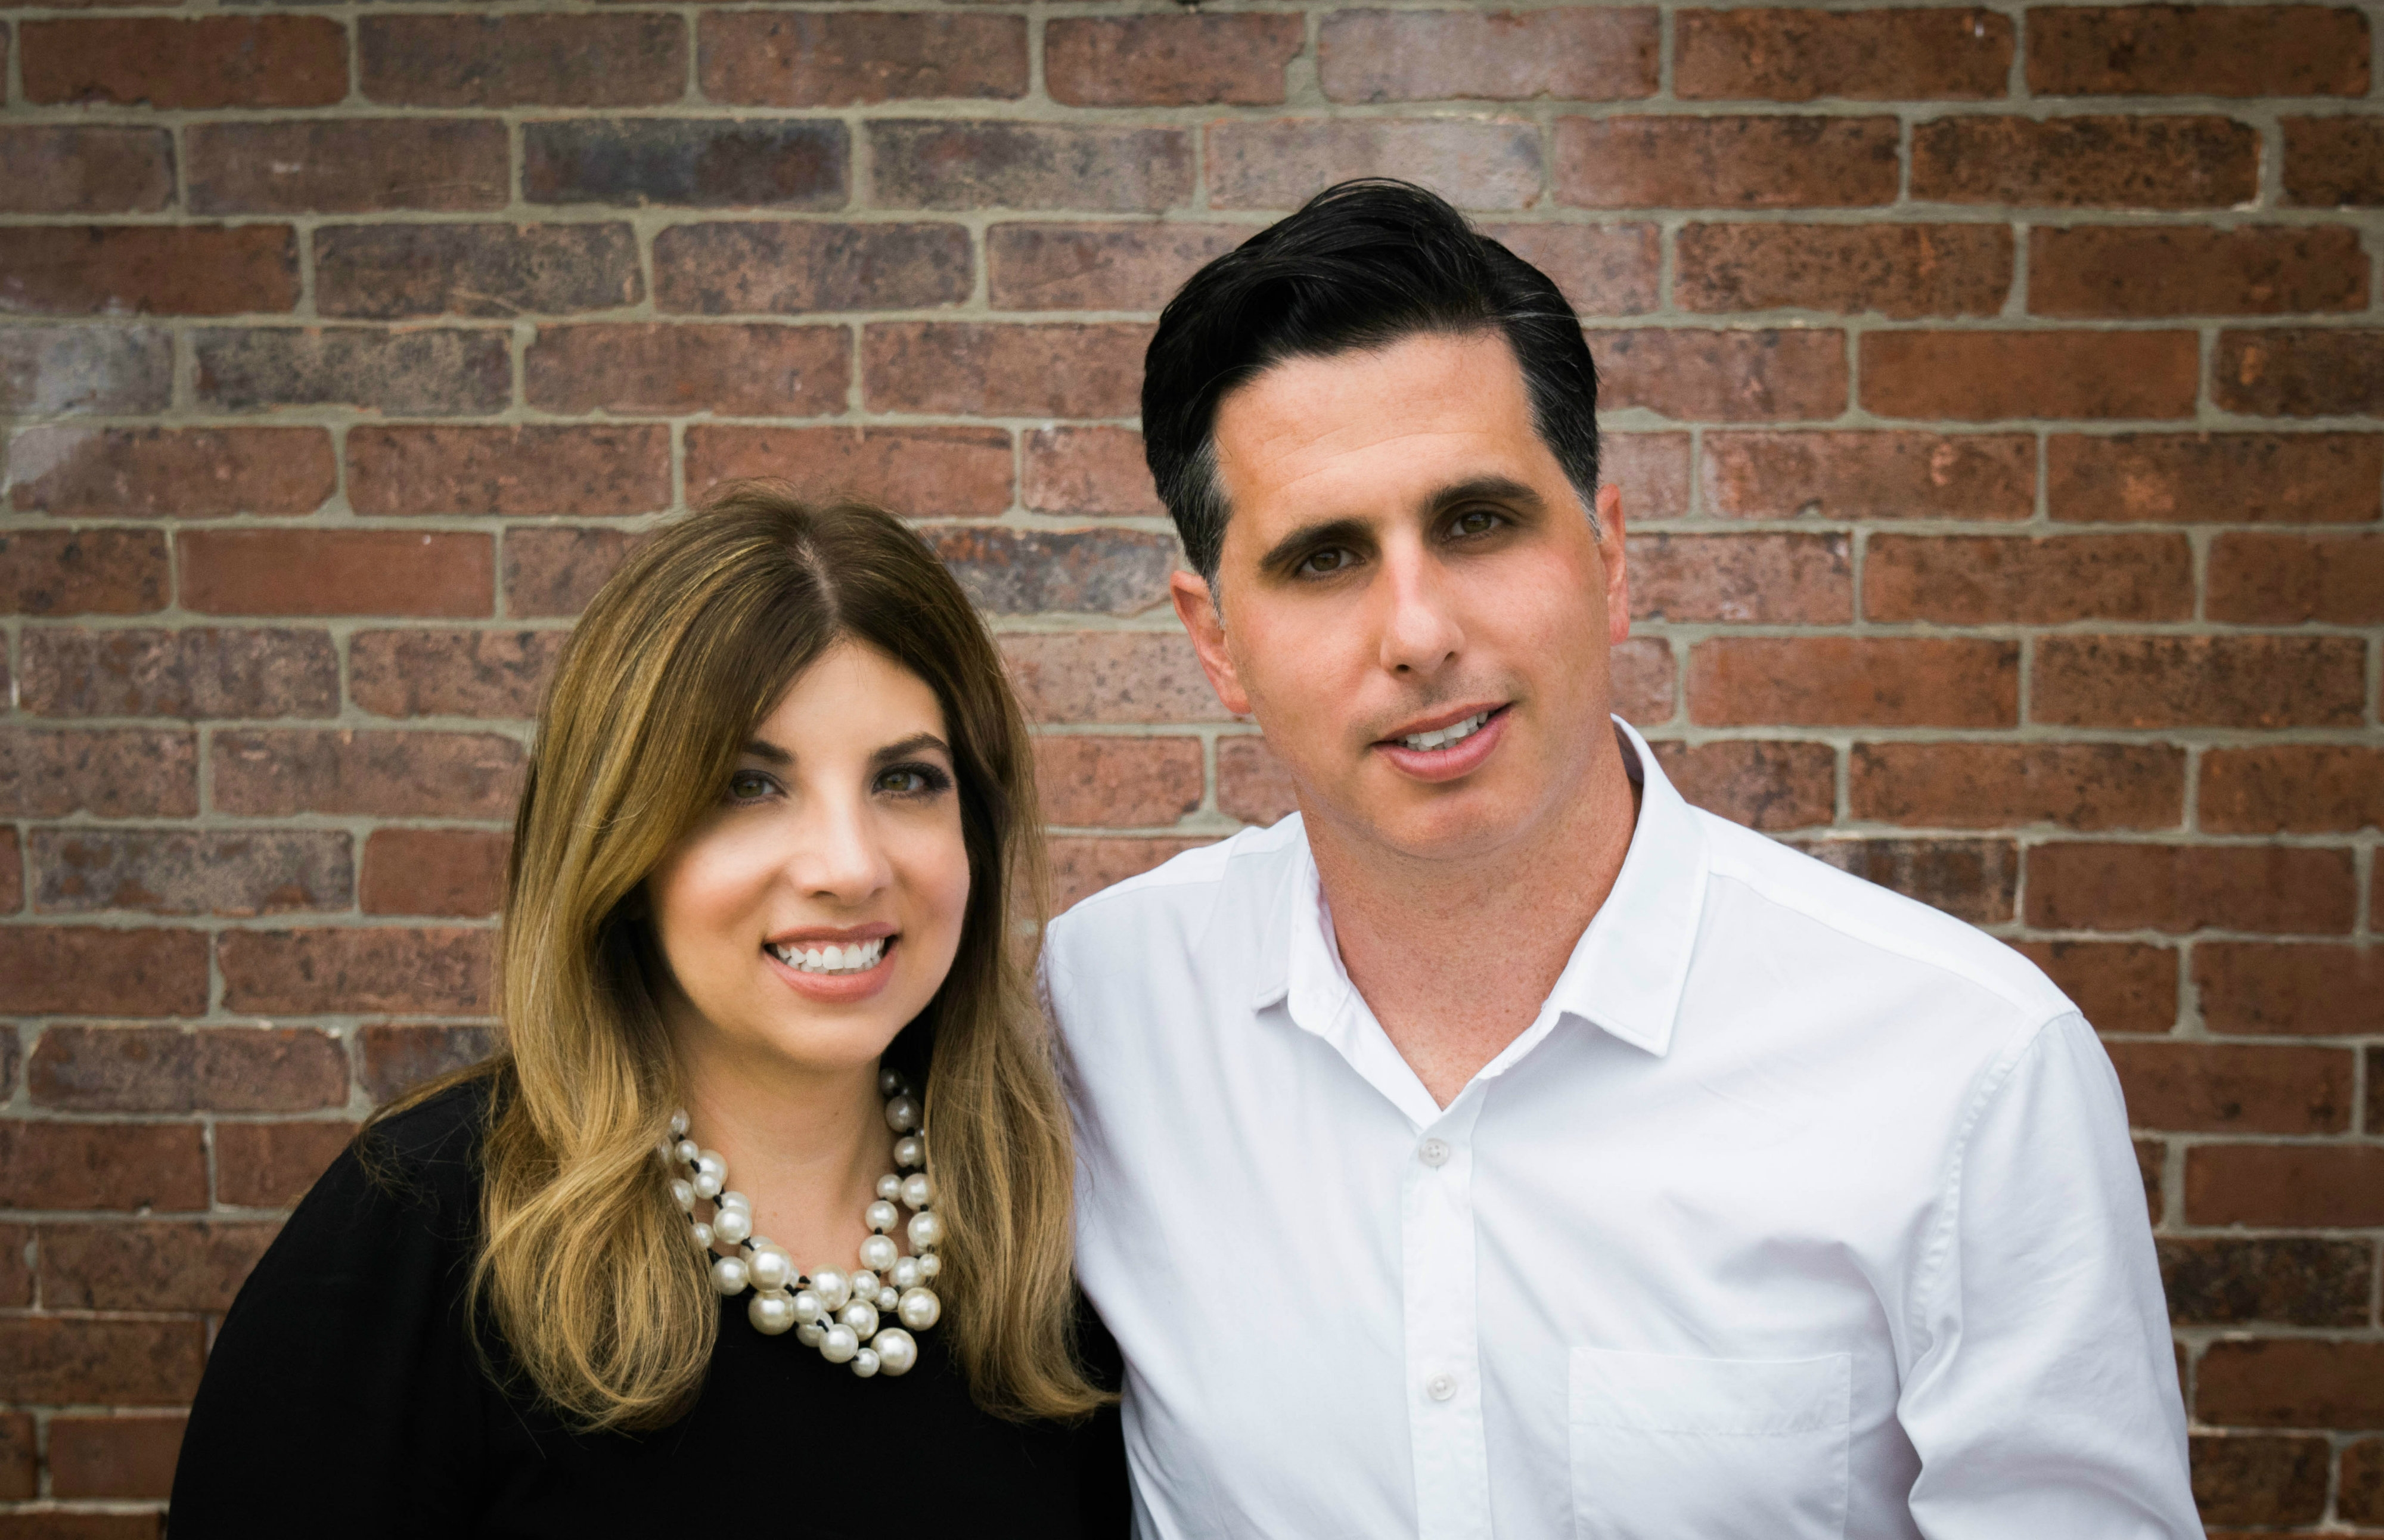 Alicia and Christian Blazevich, owners of Bespoke Beauty Bar in Wexford, PA.